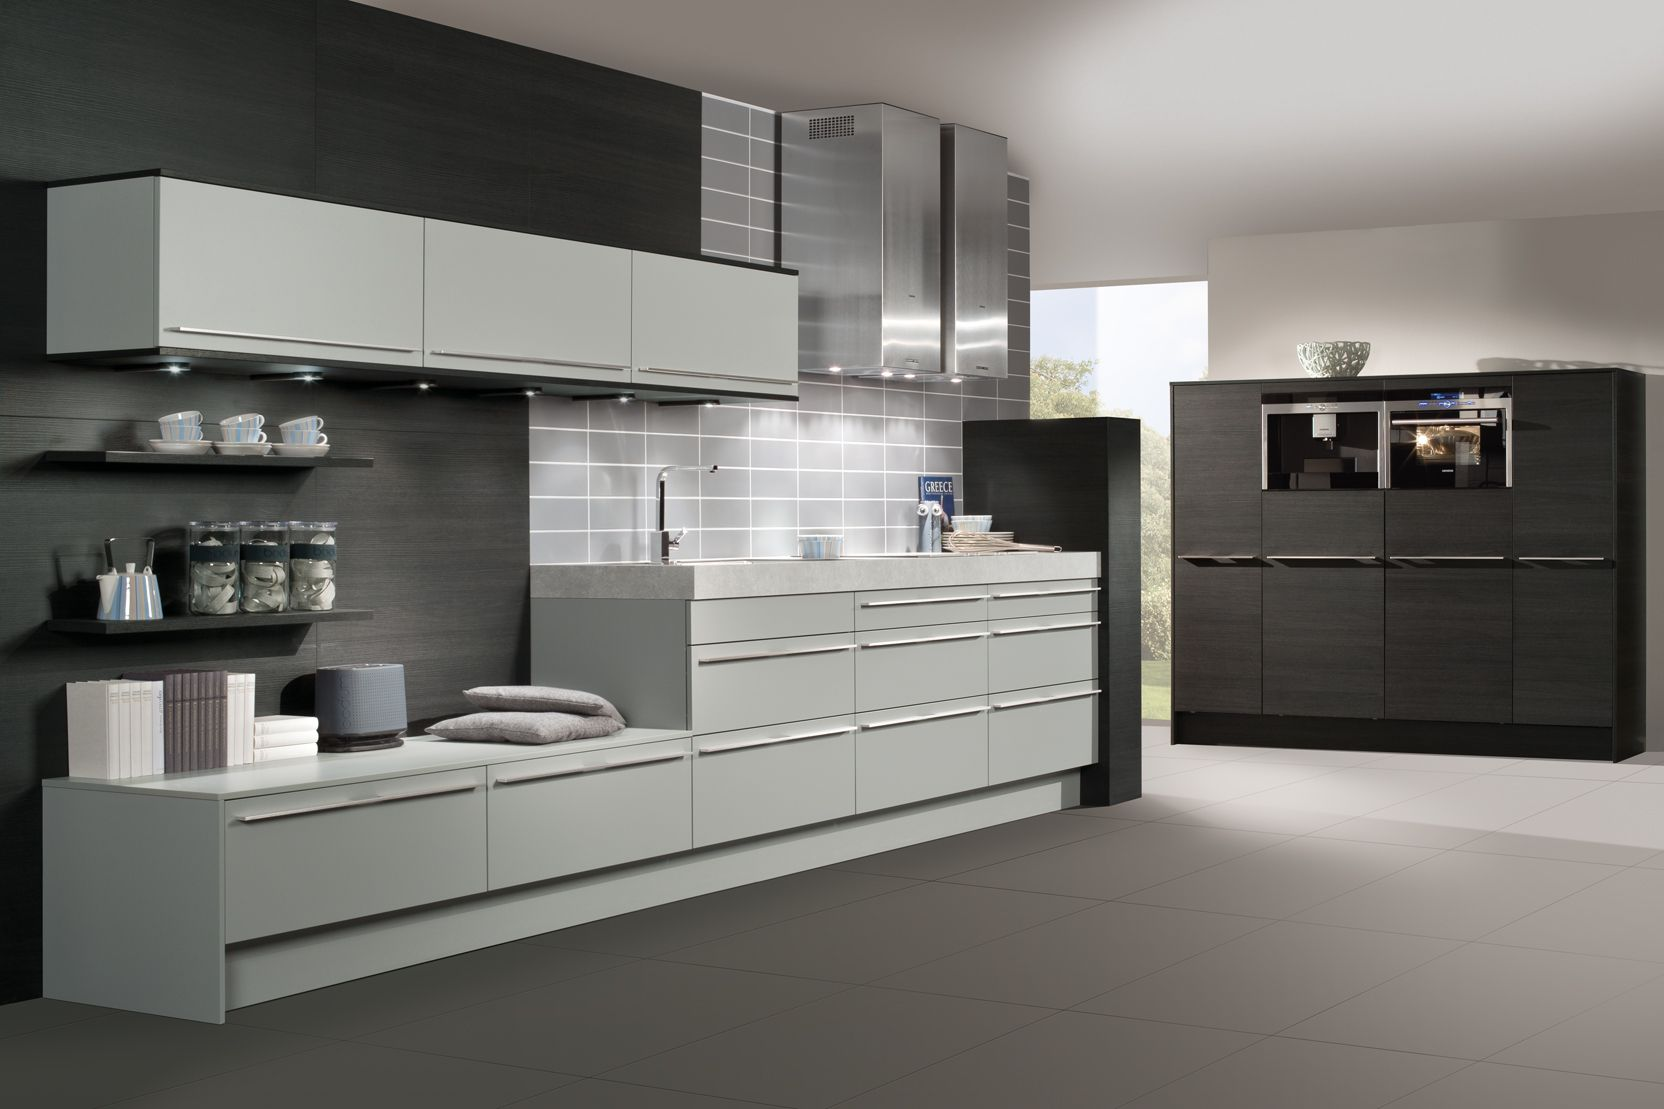 Kitchen Design At Its Best Concrete Grey Laminate